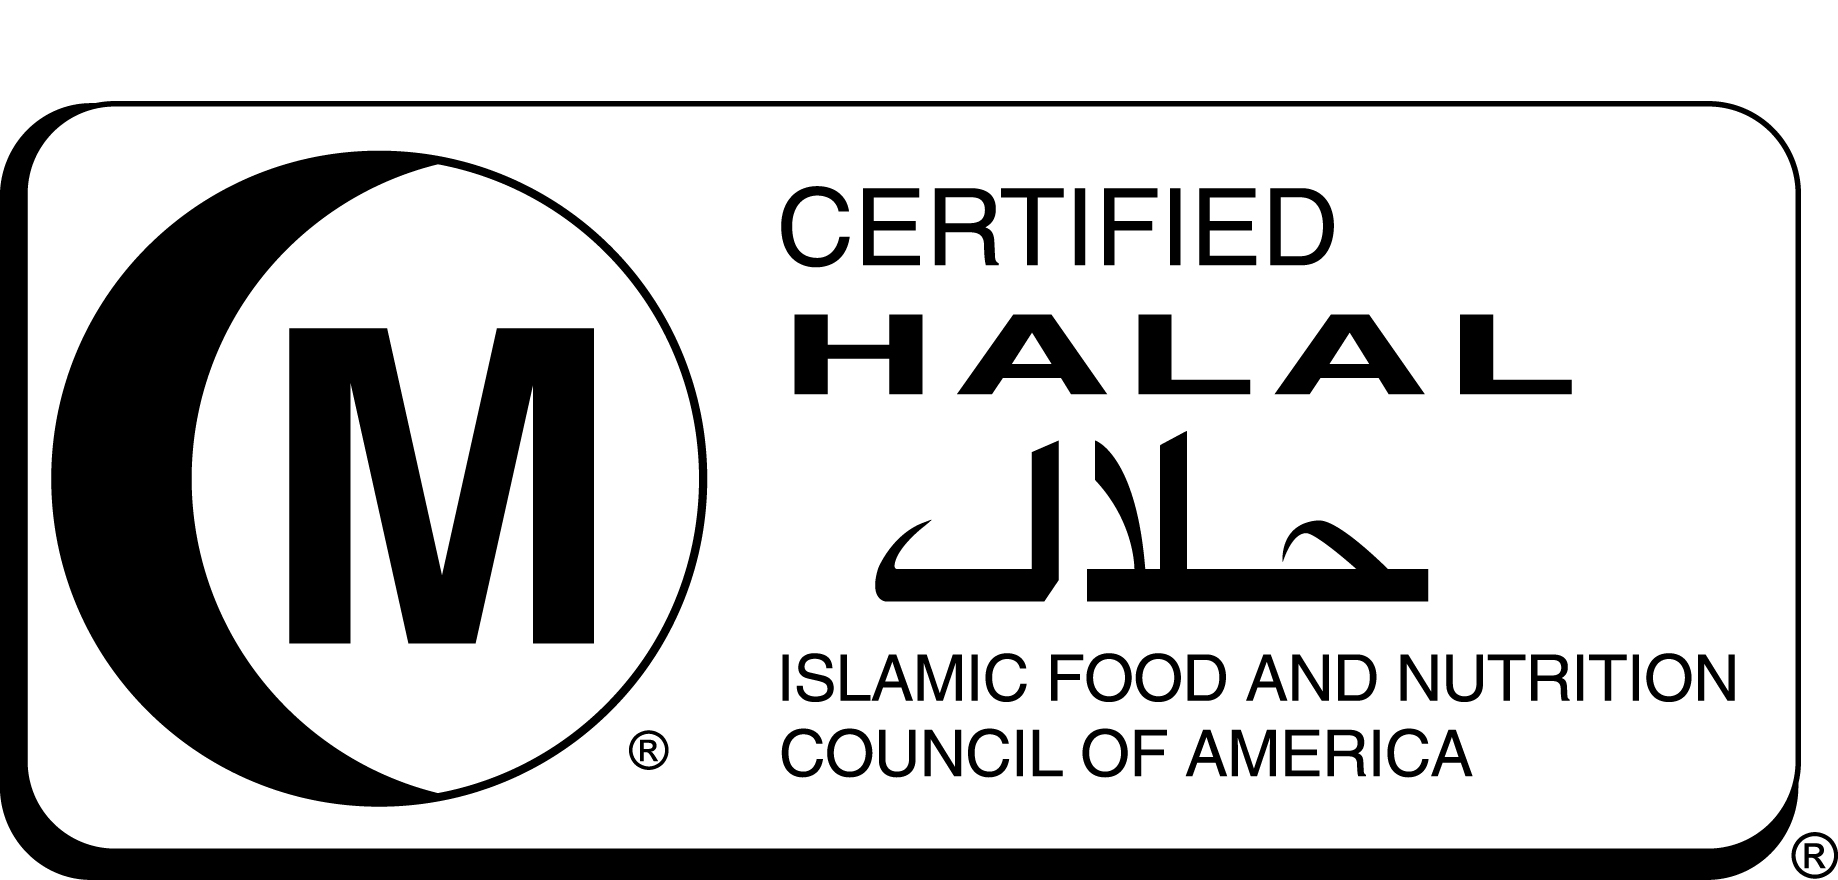 Avoid Islamic Halal Products